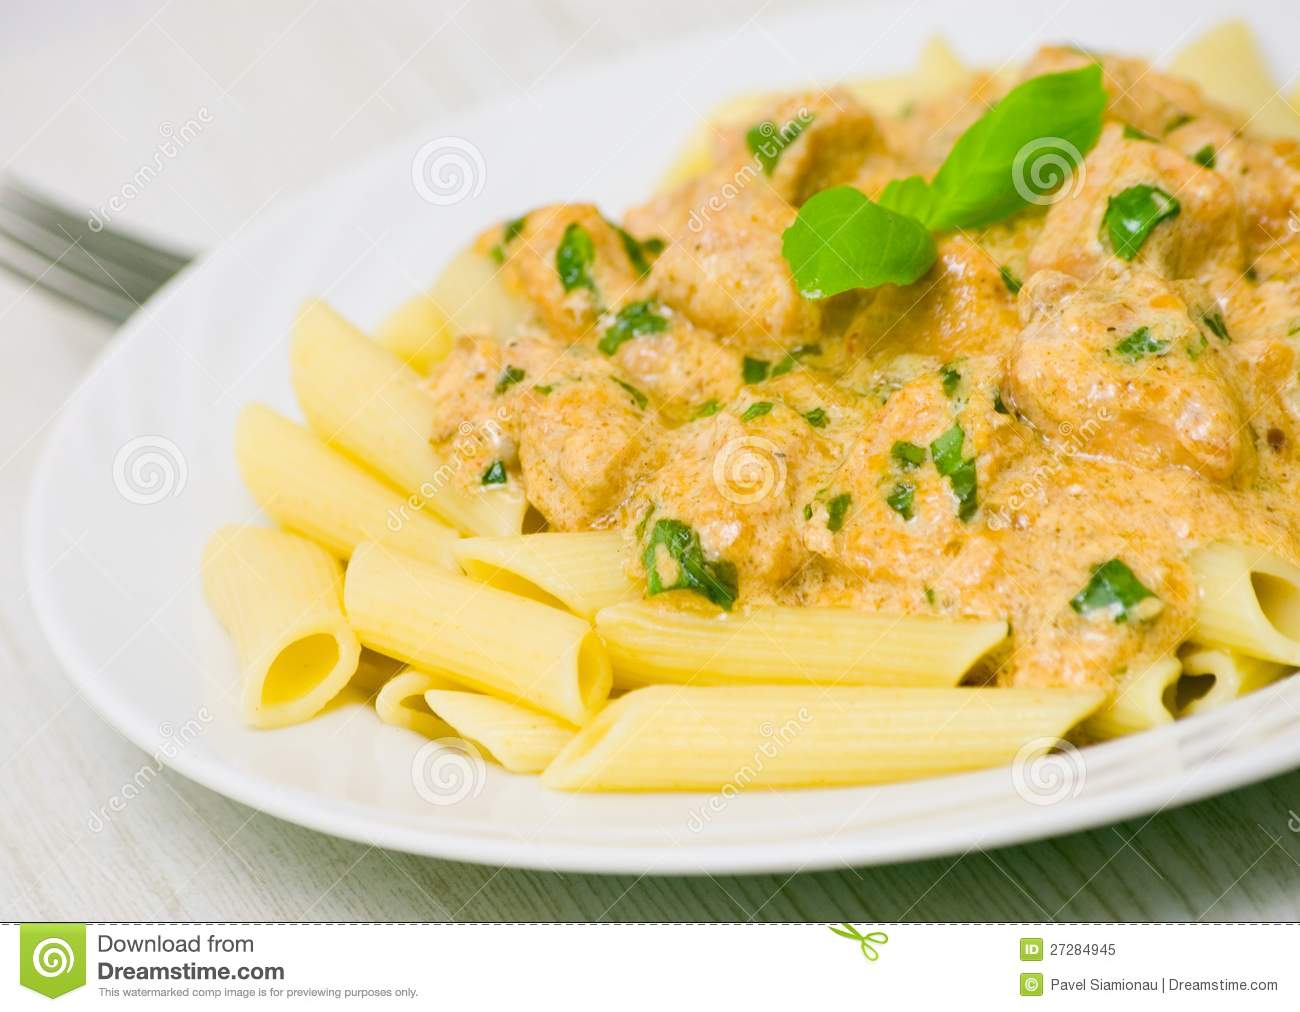 Penne Pasta With Chicken Meat, Cream Sauce Royalty Free Stock Photo ...